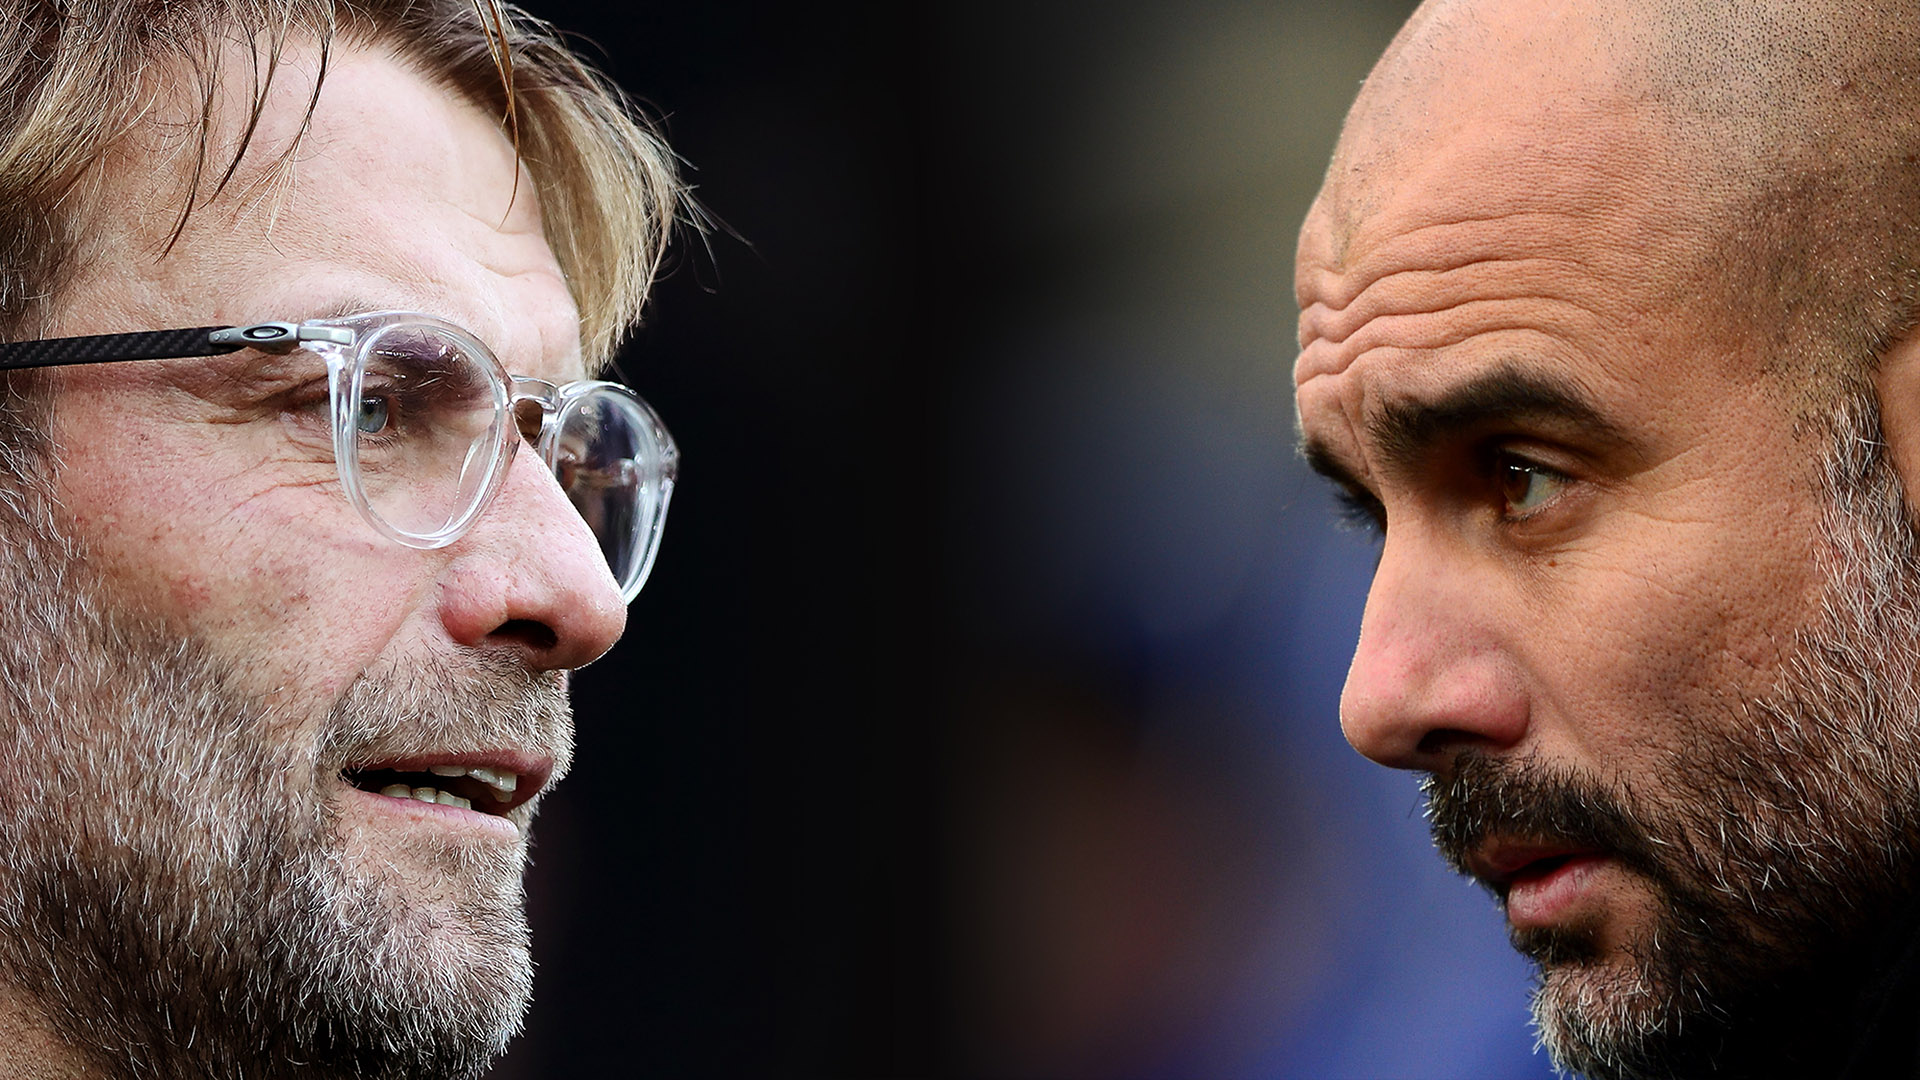 'I couldn't respect Guardiola more' - Klopp moving on from 'dive' spat